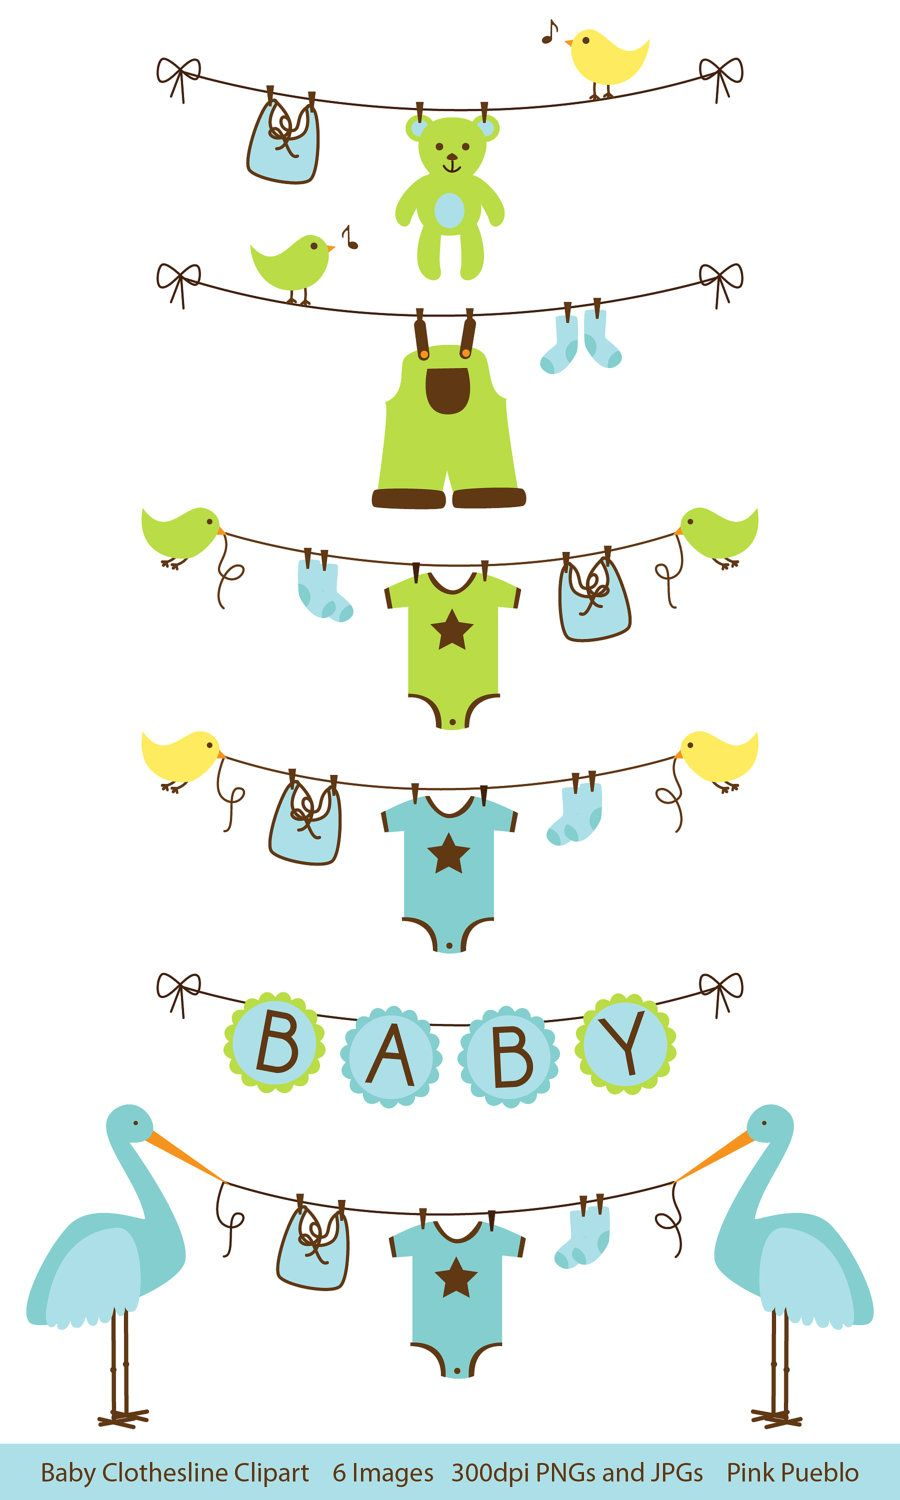 clipart baby shower pinterest - photo #43